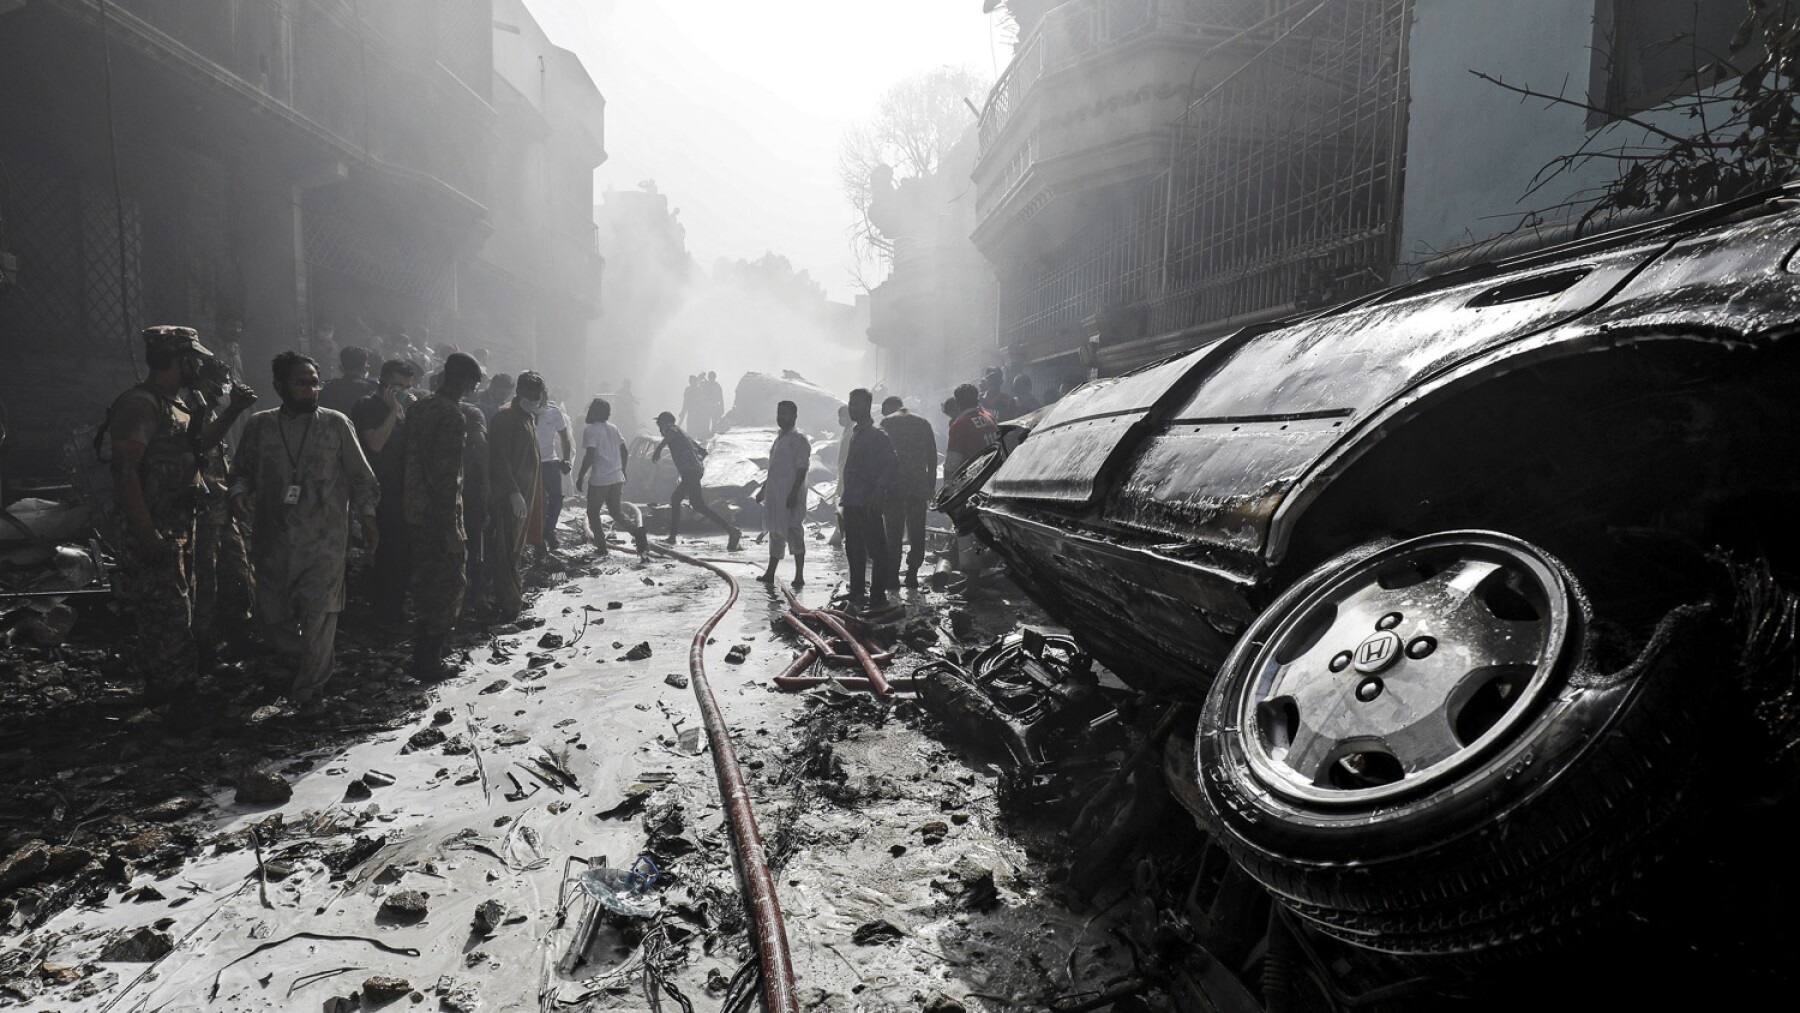 Rescue workers gather at the site of a passenger plane crash in a residential area near an airport in Karachi